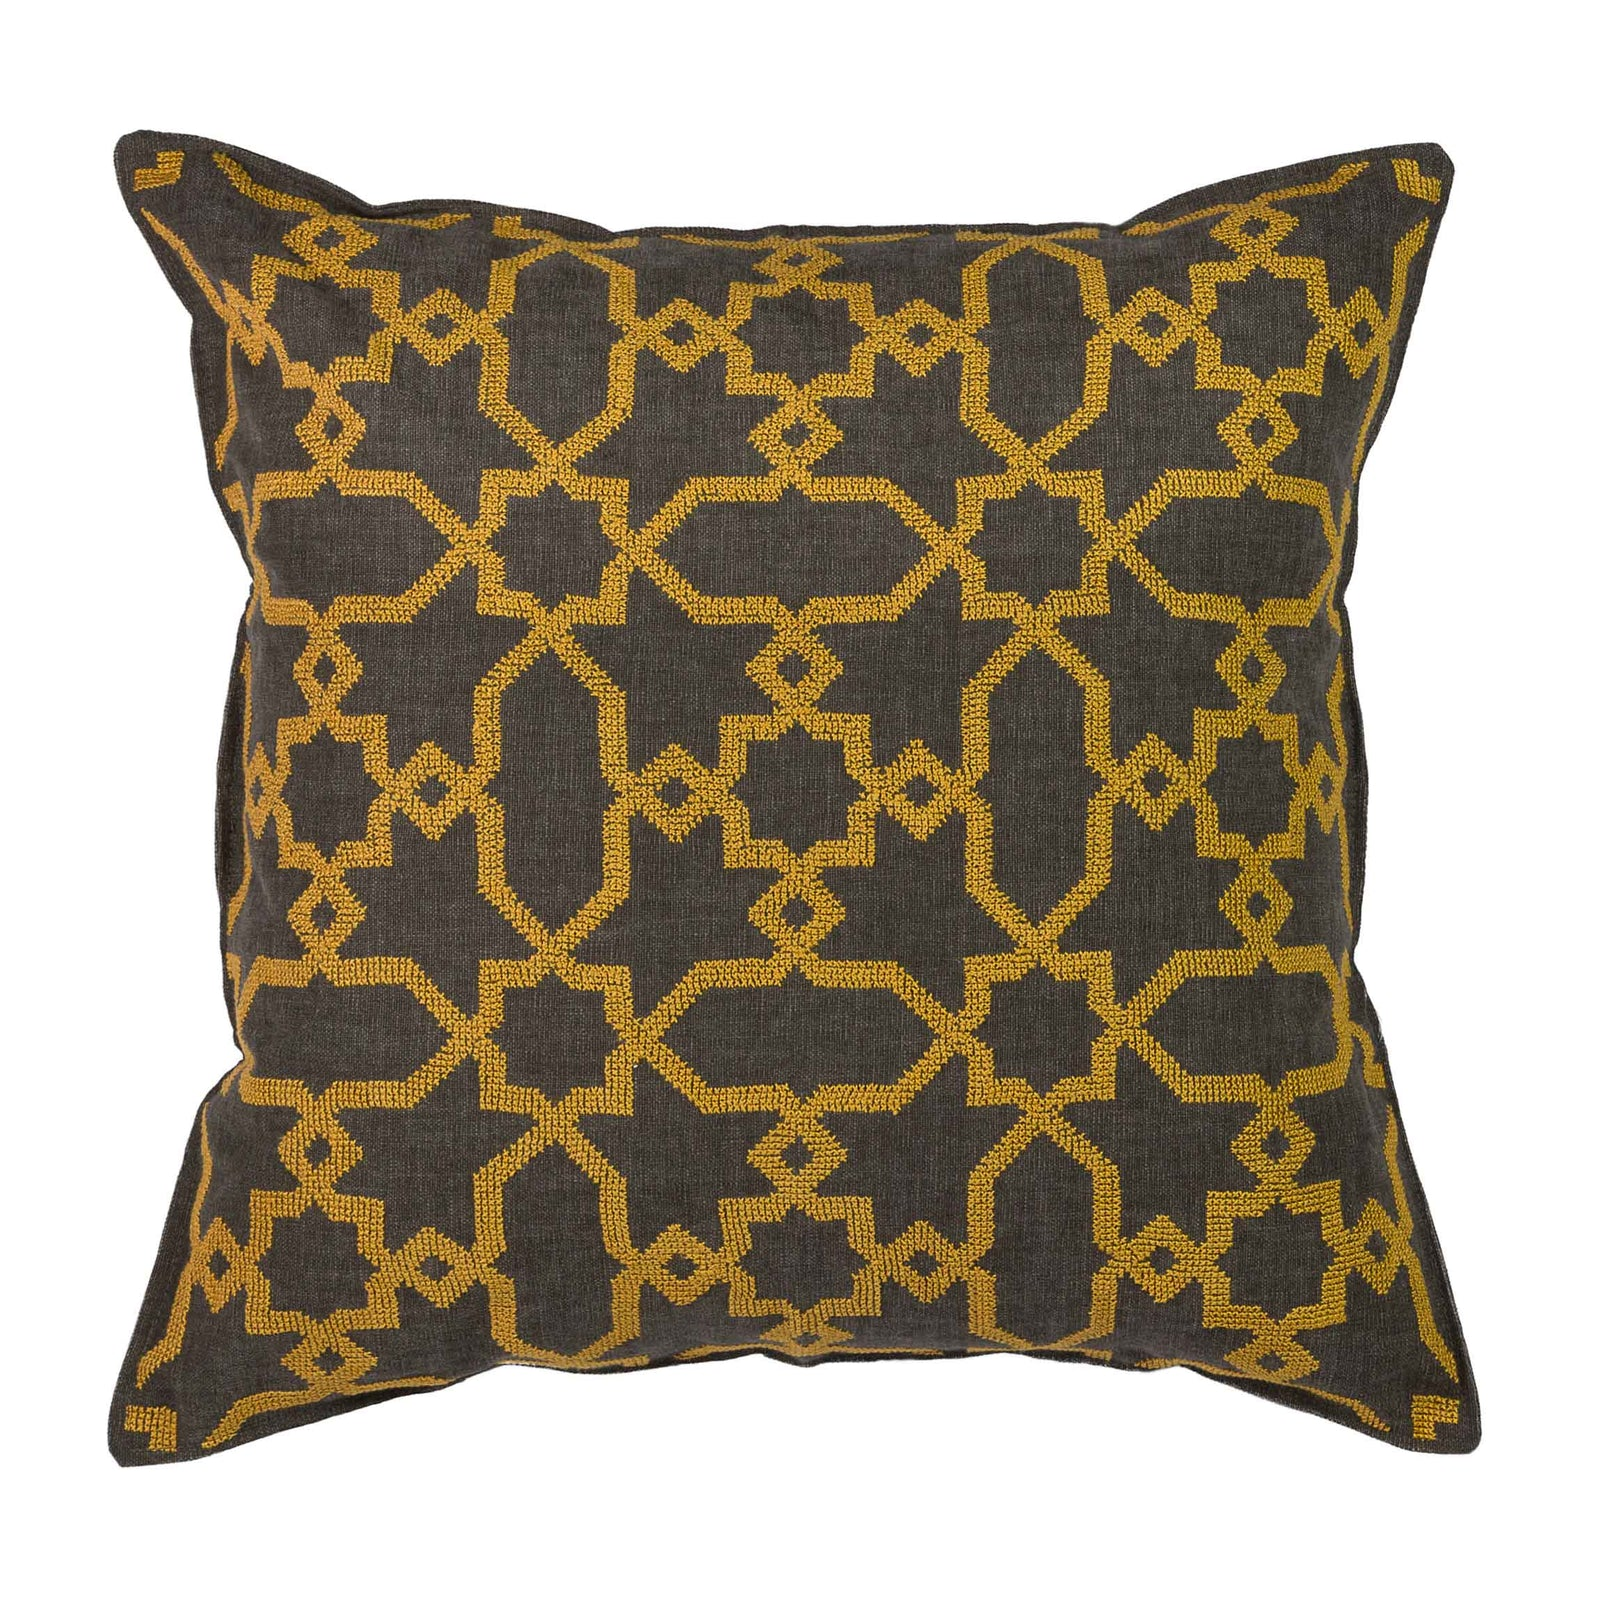 Koutubia® Cushion Cover Limited Edition